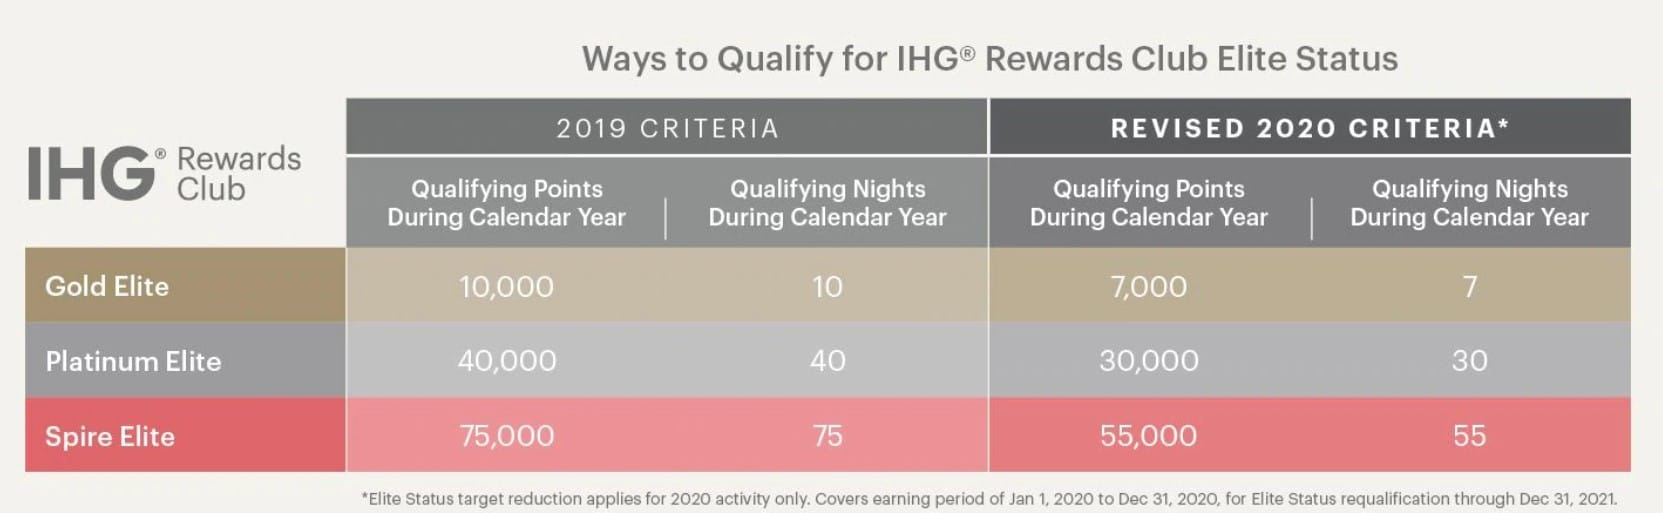 IHG Rewards Club COVID-19 Updates 1